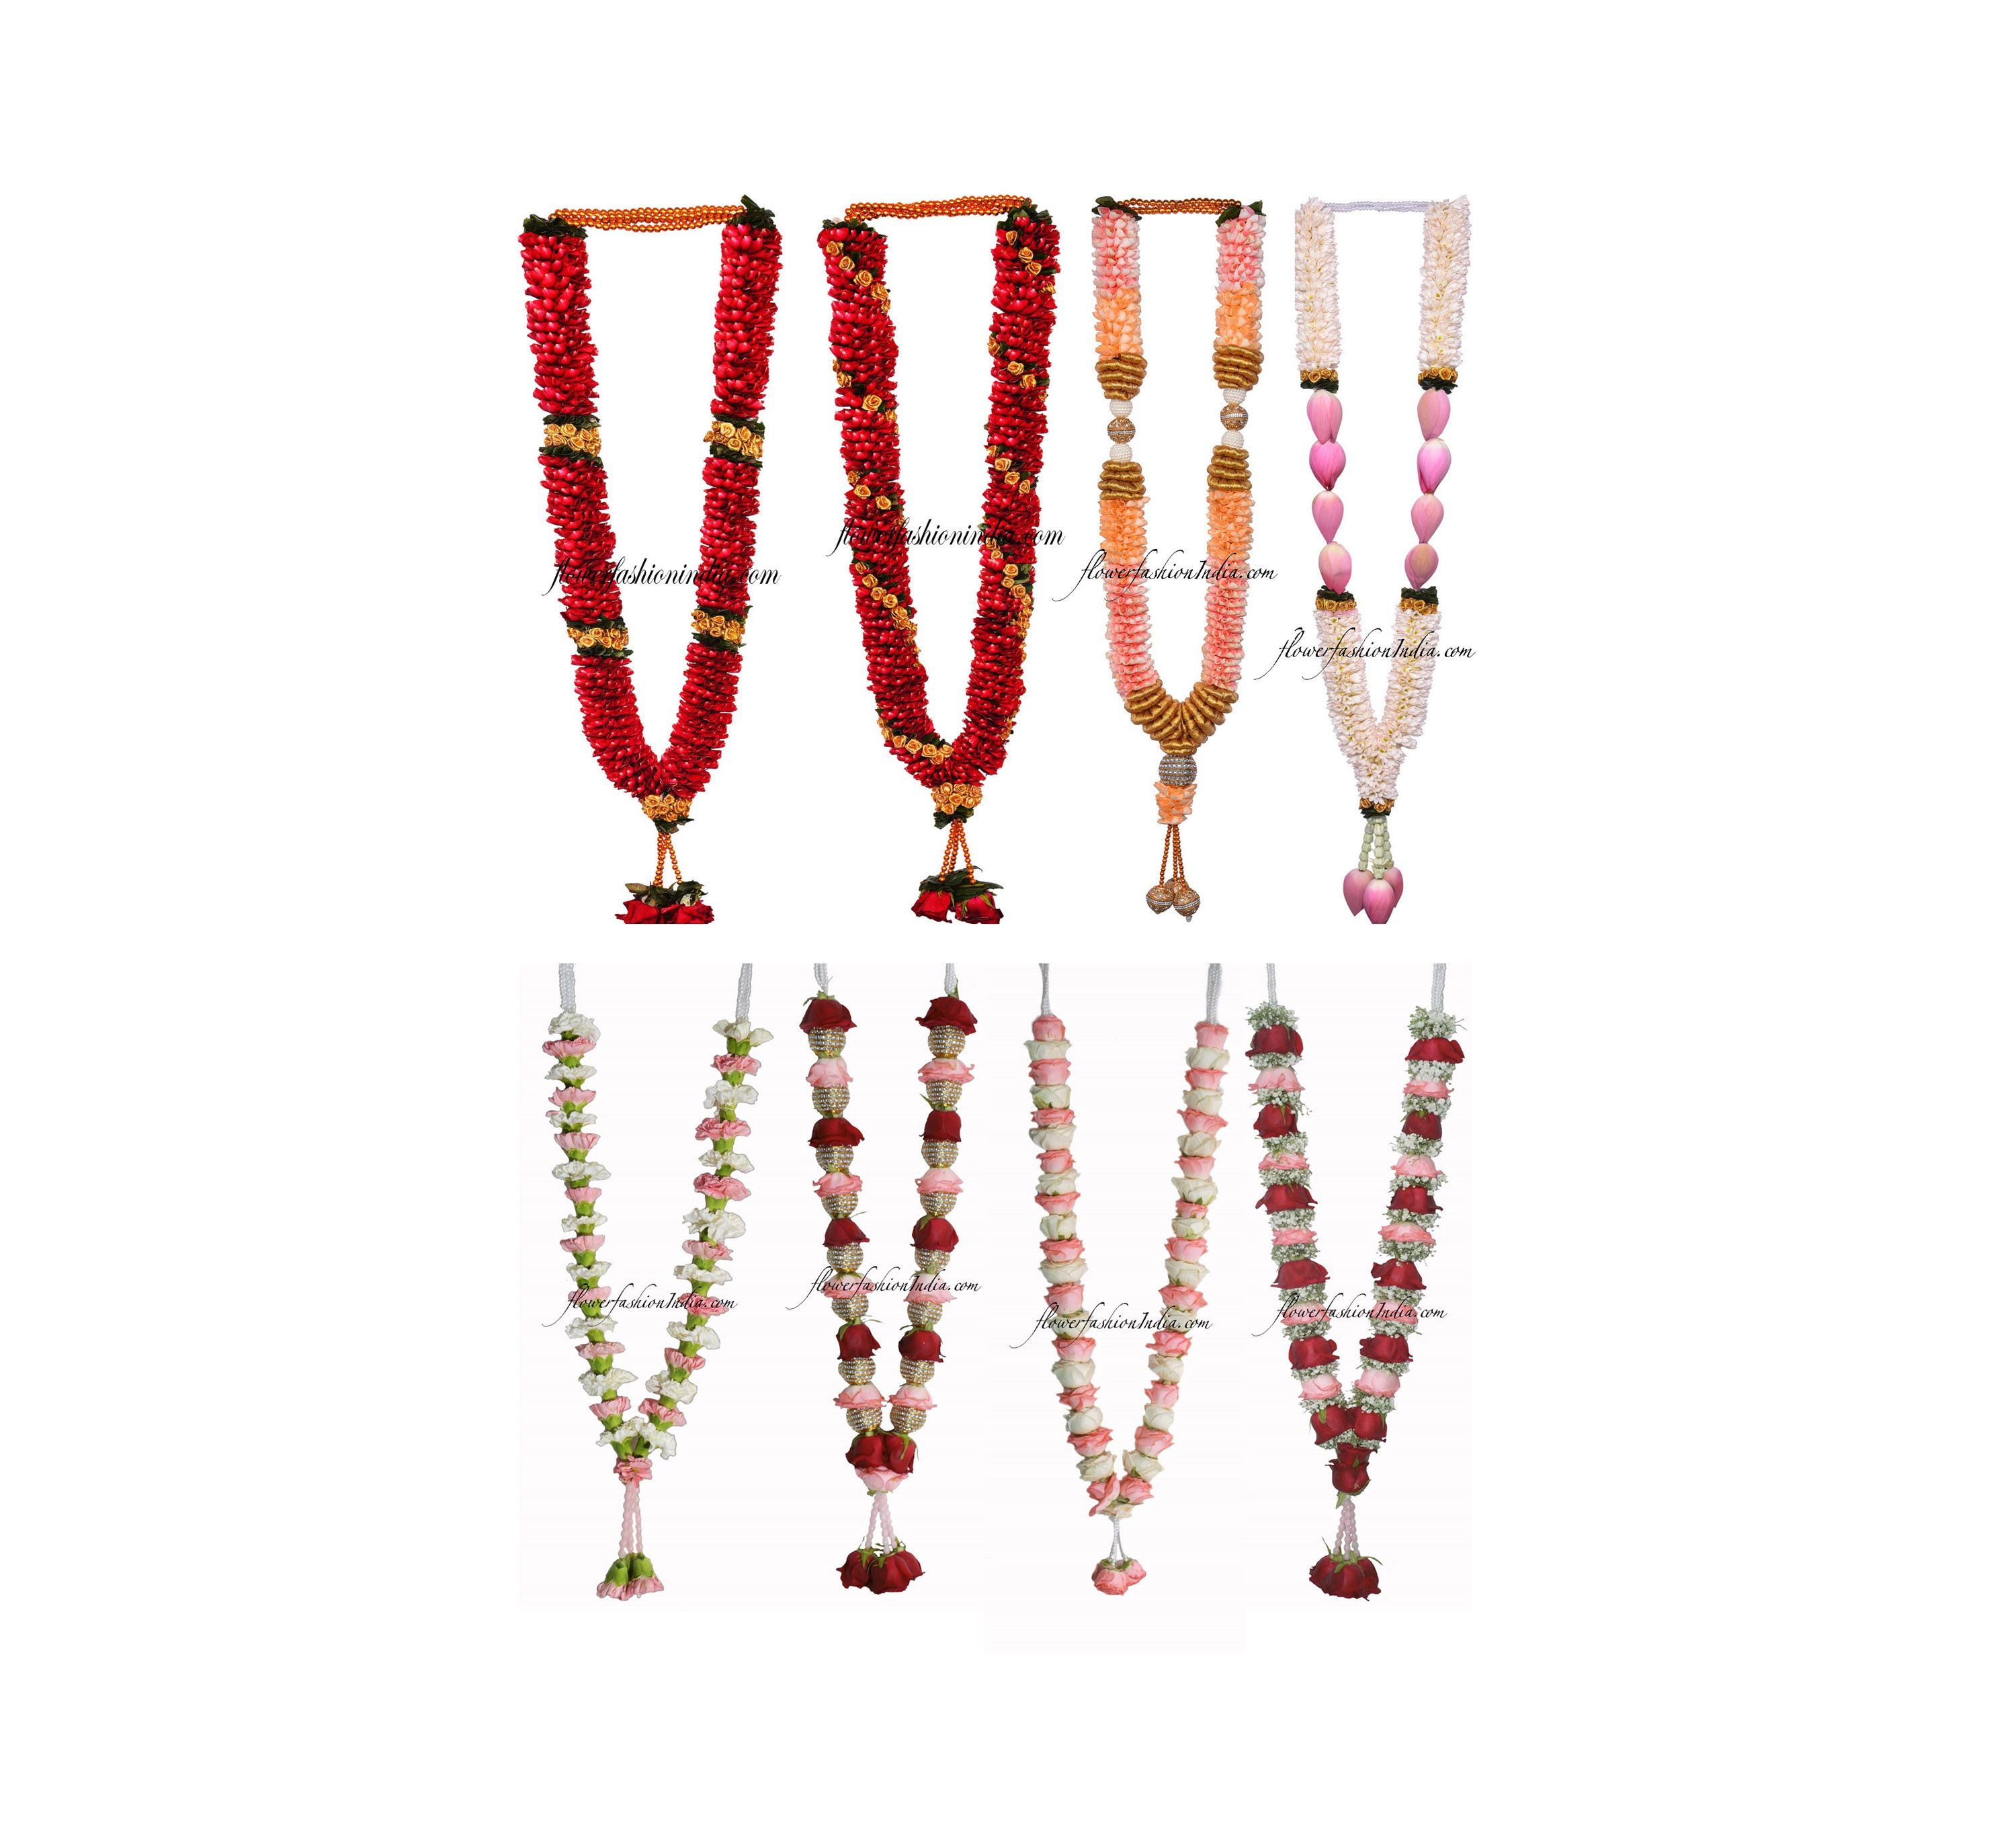 Wedding Garland Online Buy Now On Exciting Inaugural Offer 50 Off  1000Rs Flat Off On All Garland Customized Wedding Garland On Call Now 9844066060 For Customizing Your W...